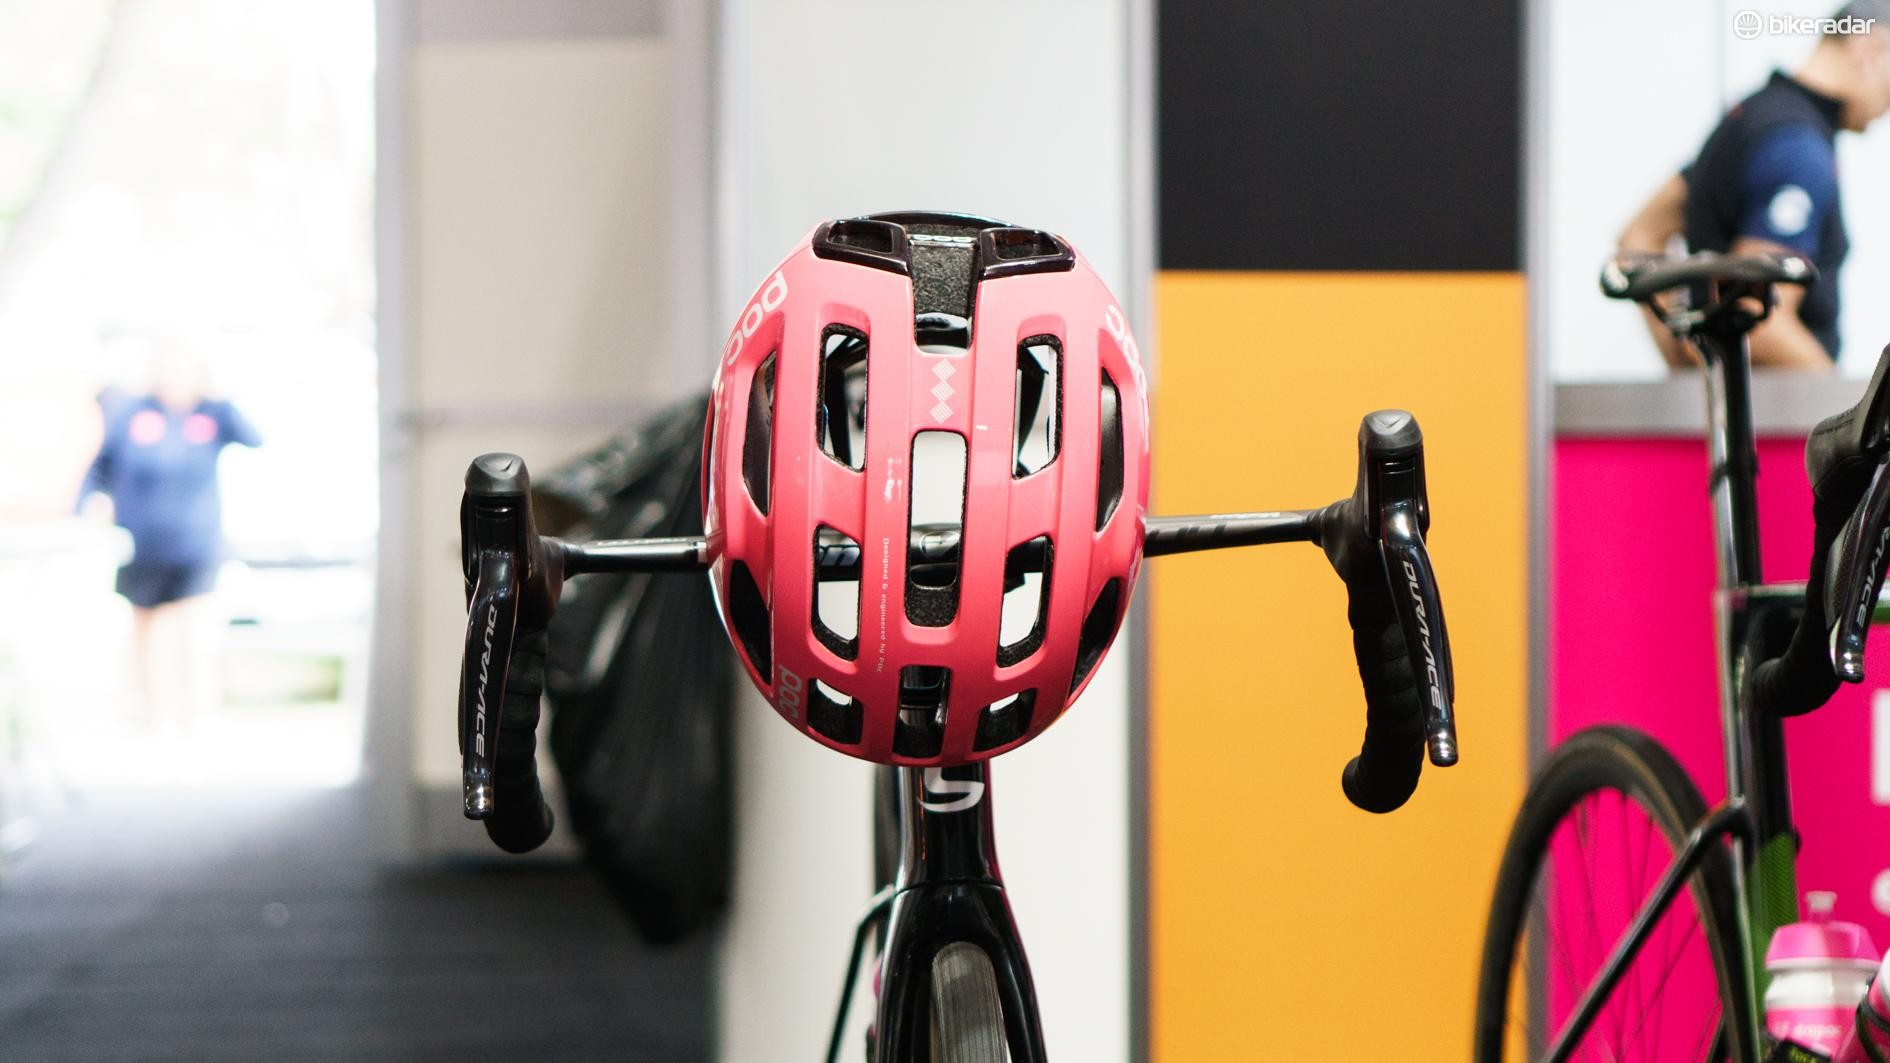 The high quantity of large vents on the helmet draws similarities with the POC Octal, which was the brand's first road cycling helmet